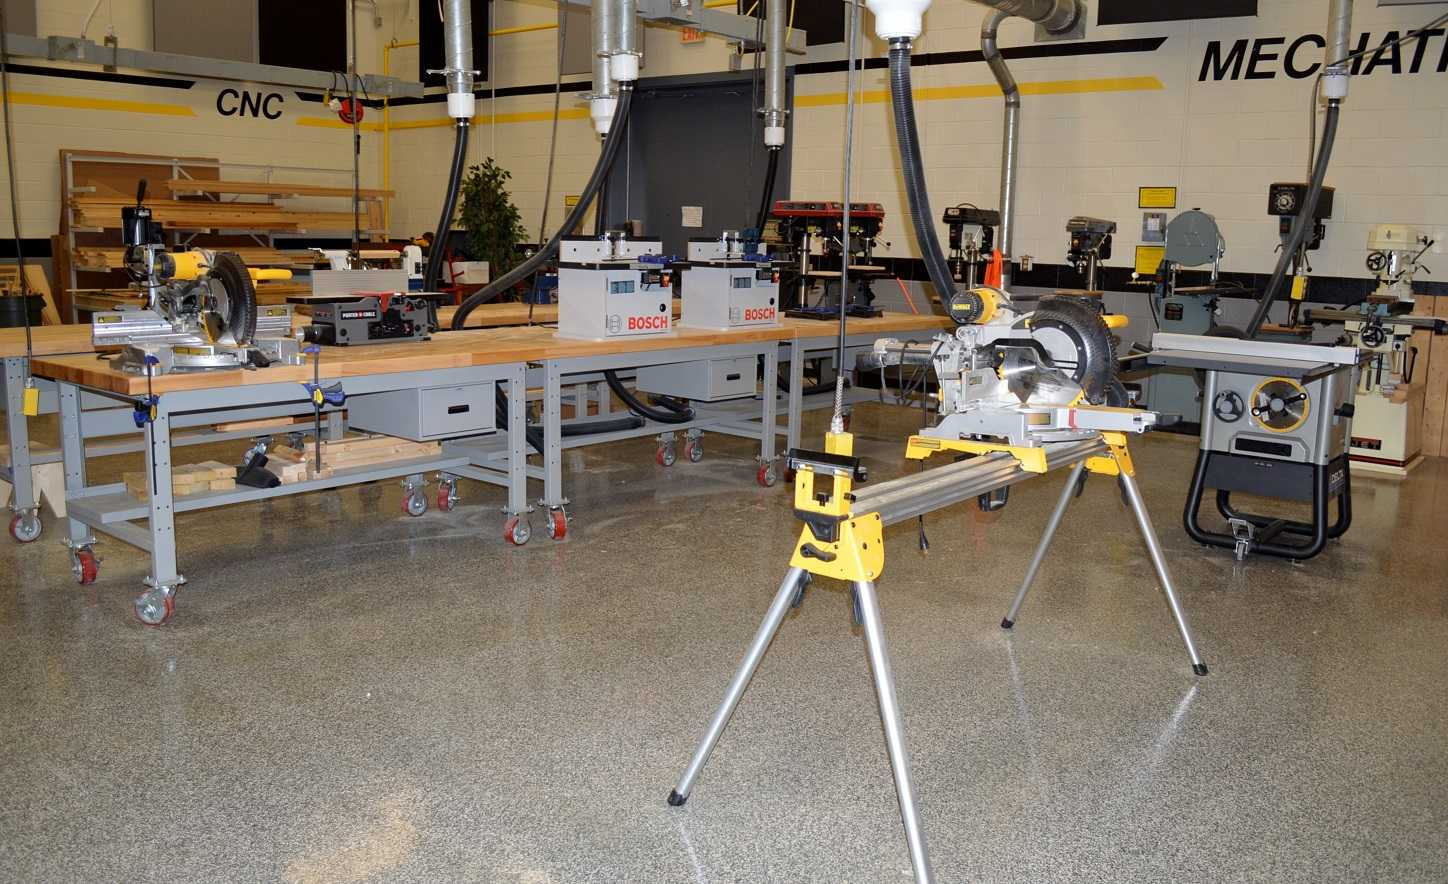 The Greer High School Industrial Technology and Advanced Manufacturing Lab boasts over $250,000 worth of equipment.